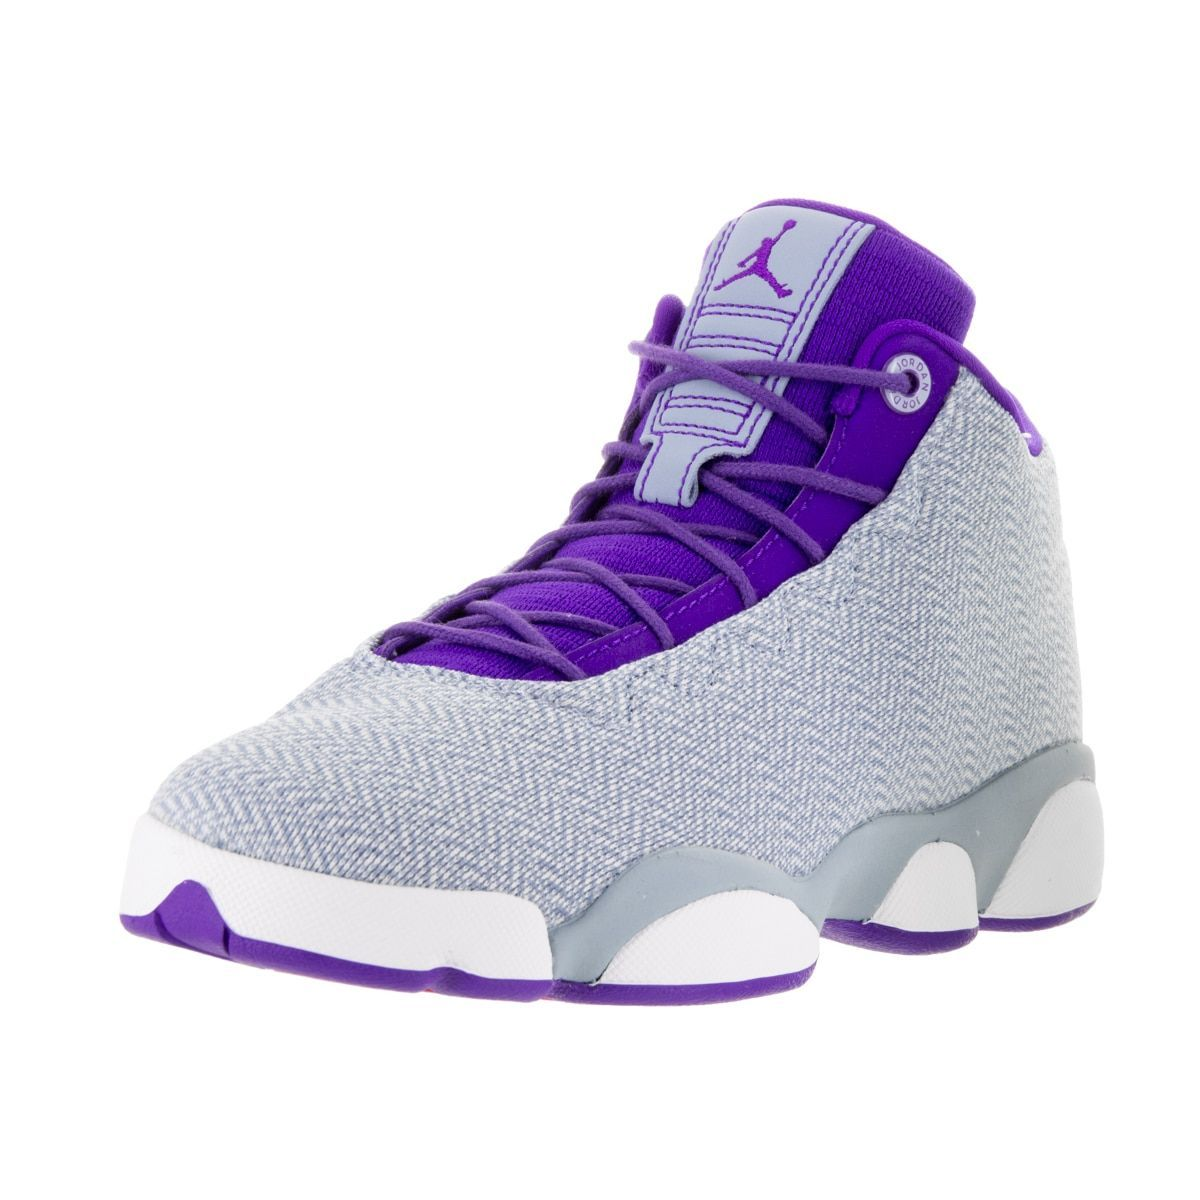 air jordan shoes horizon wearing purple on thursday 773942